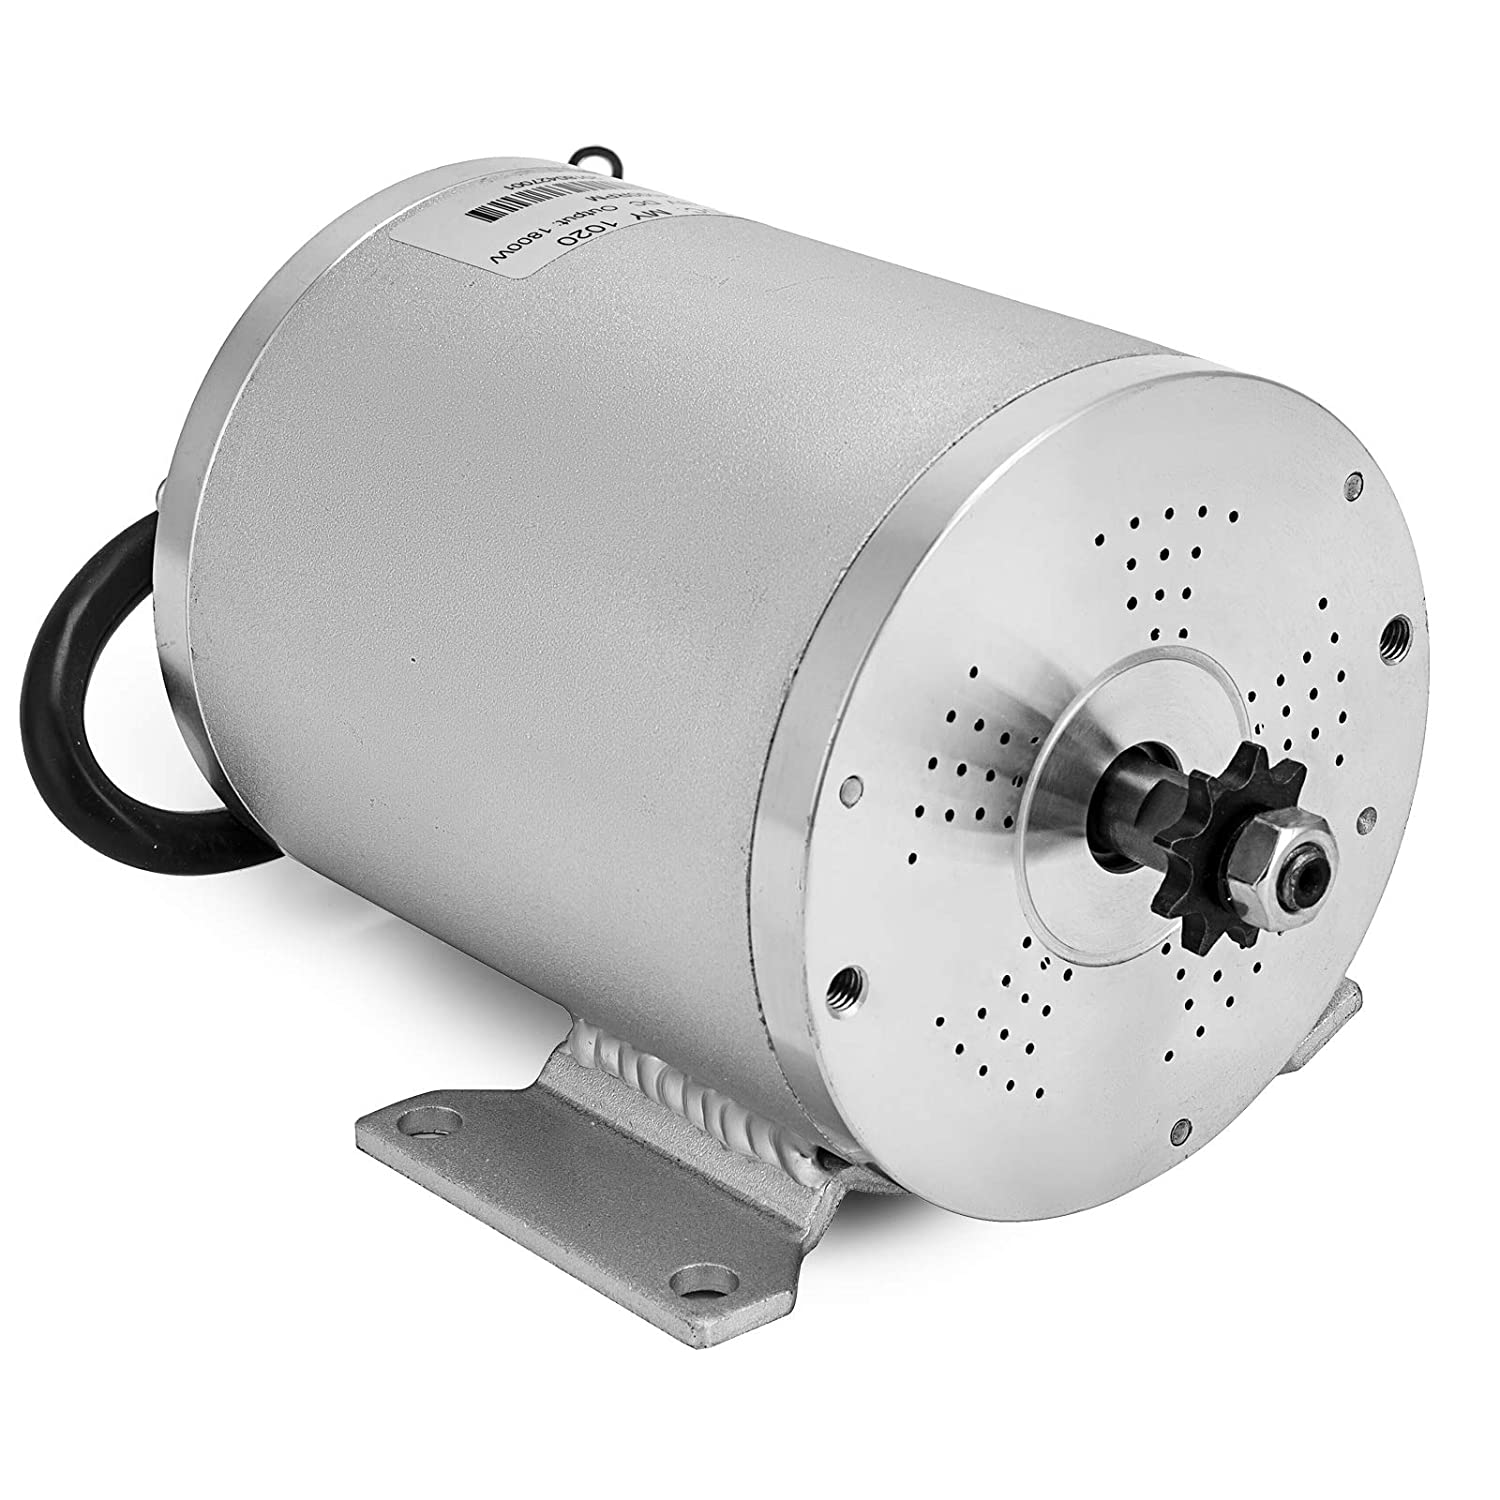 Mophorn 1800w Electric Brushless Dc Motor Kit 48v High Power Wiring In Addition Car Conversion Kits Speed With 32a Controller And Throttle Grip For Go Karts E Bike